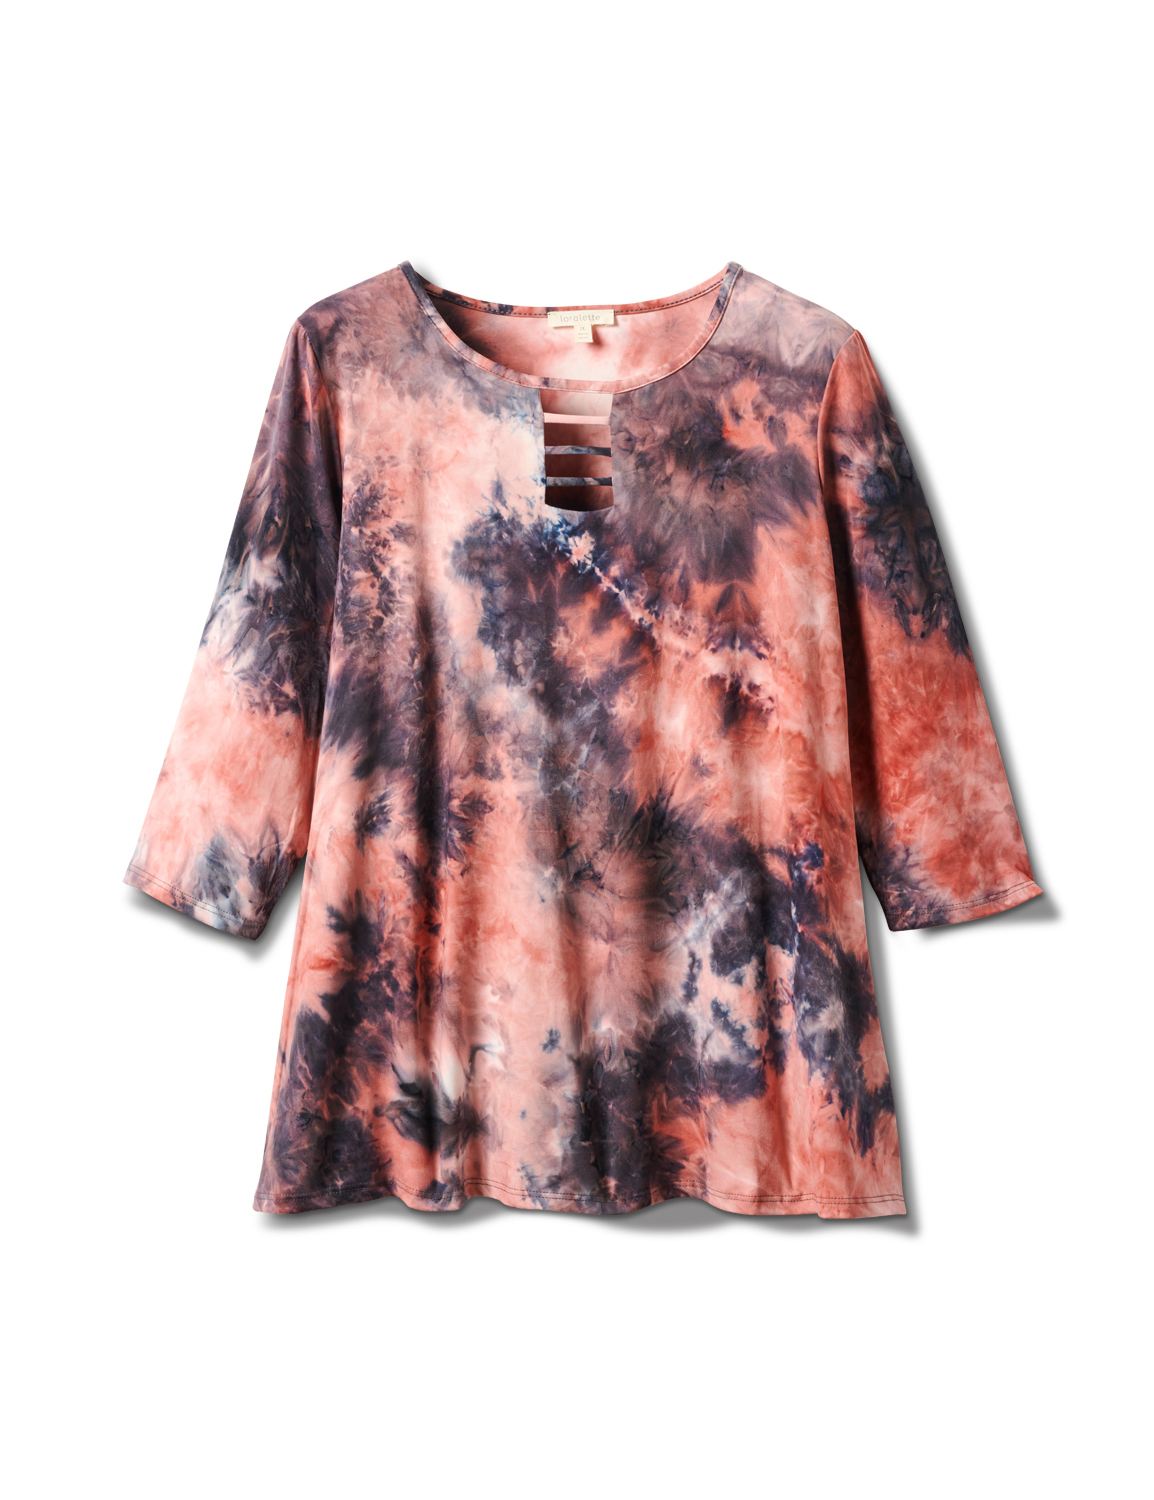 Lattice Neck Tie Dye Knit Top -Pink/Blue - Front